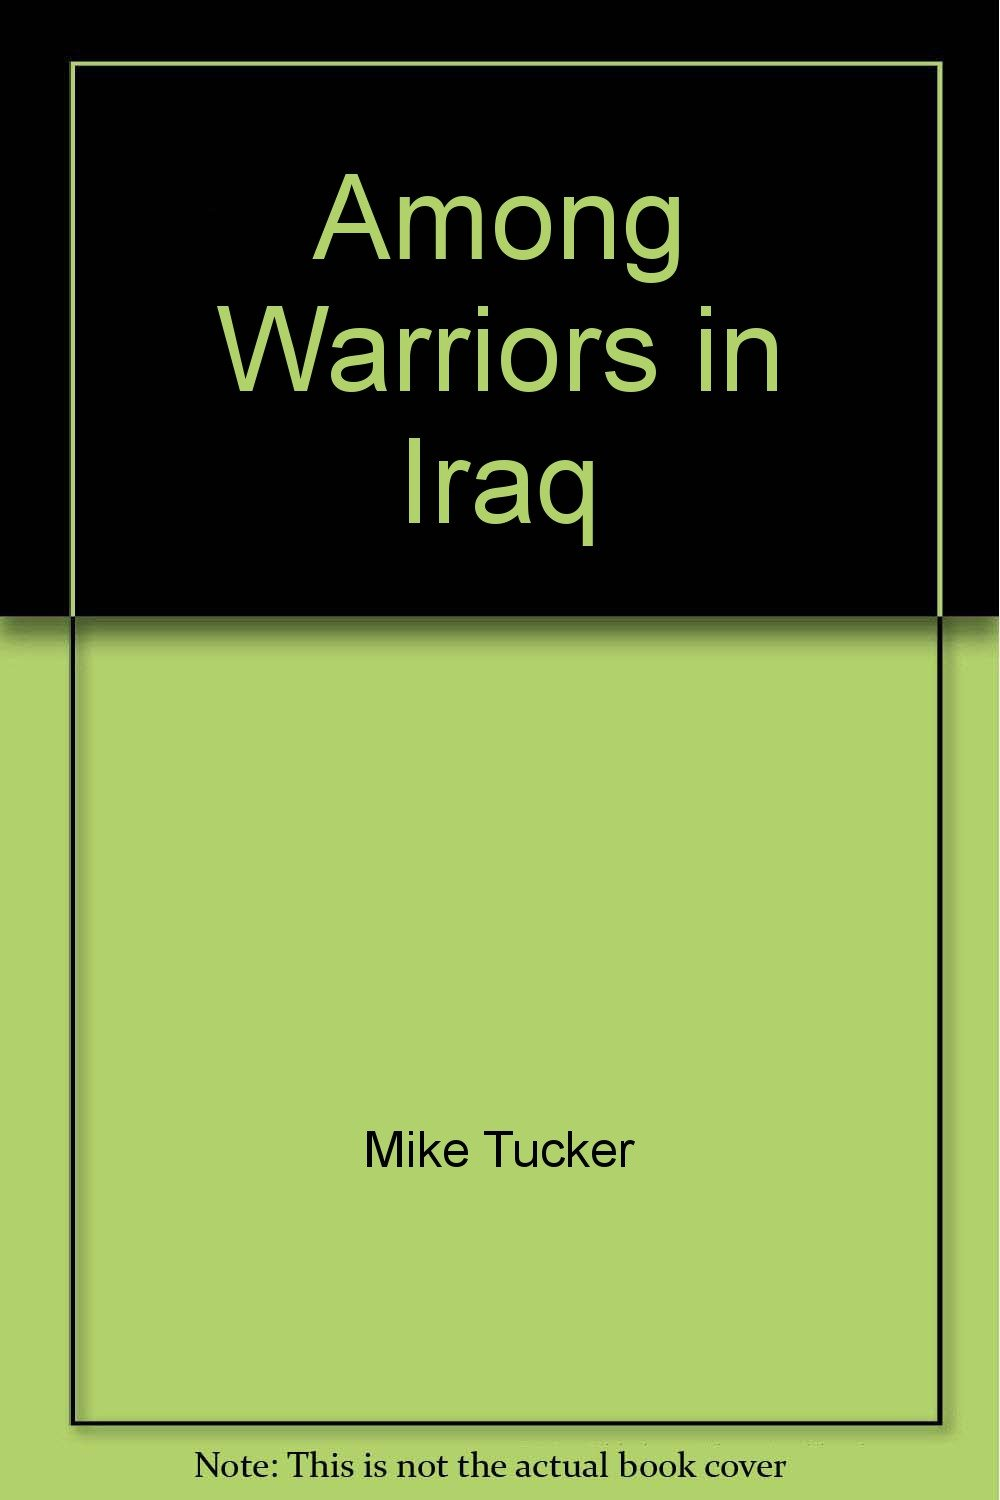 Among Warriors in Iraq (True Grit, Special Ops, and Raiding in Mosul and Fallujah) (True Grit, Special Ops, and Raiding in Mosul and Fallujah) PDF